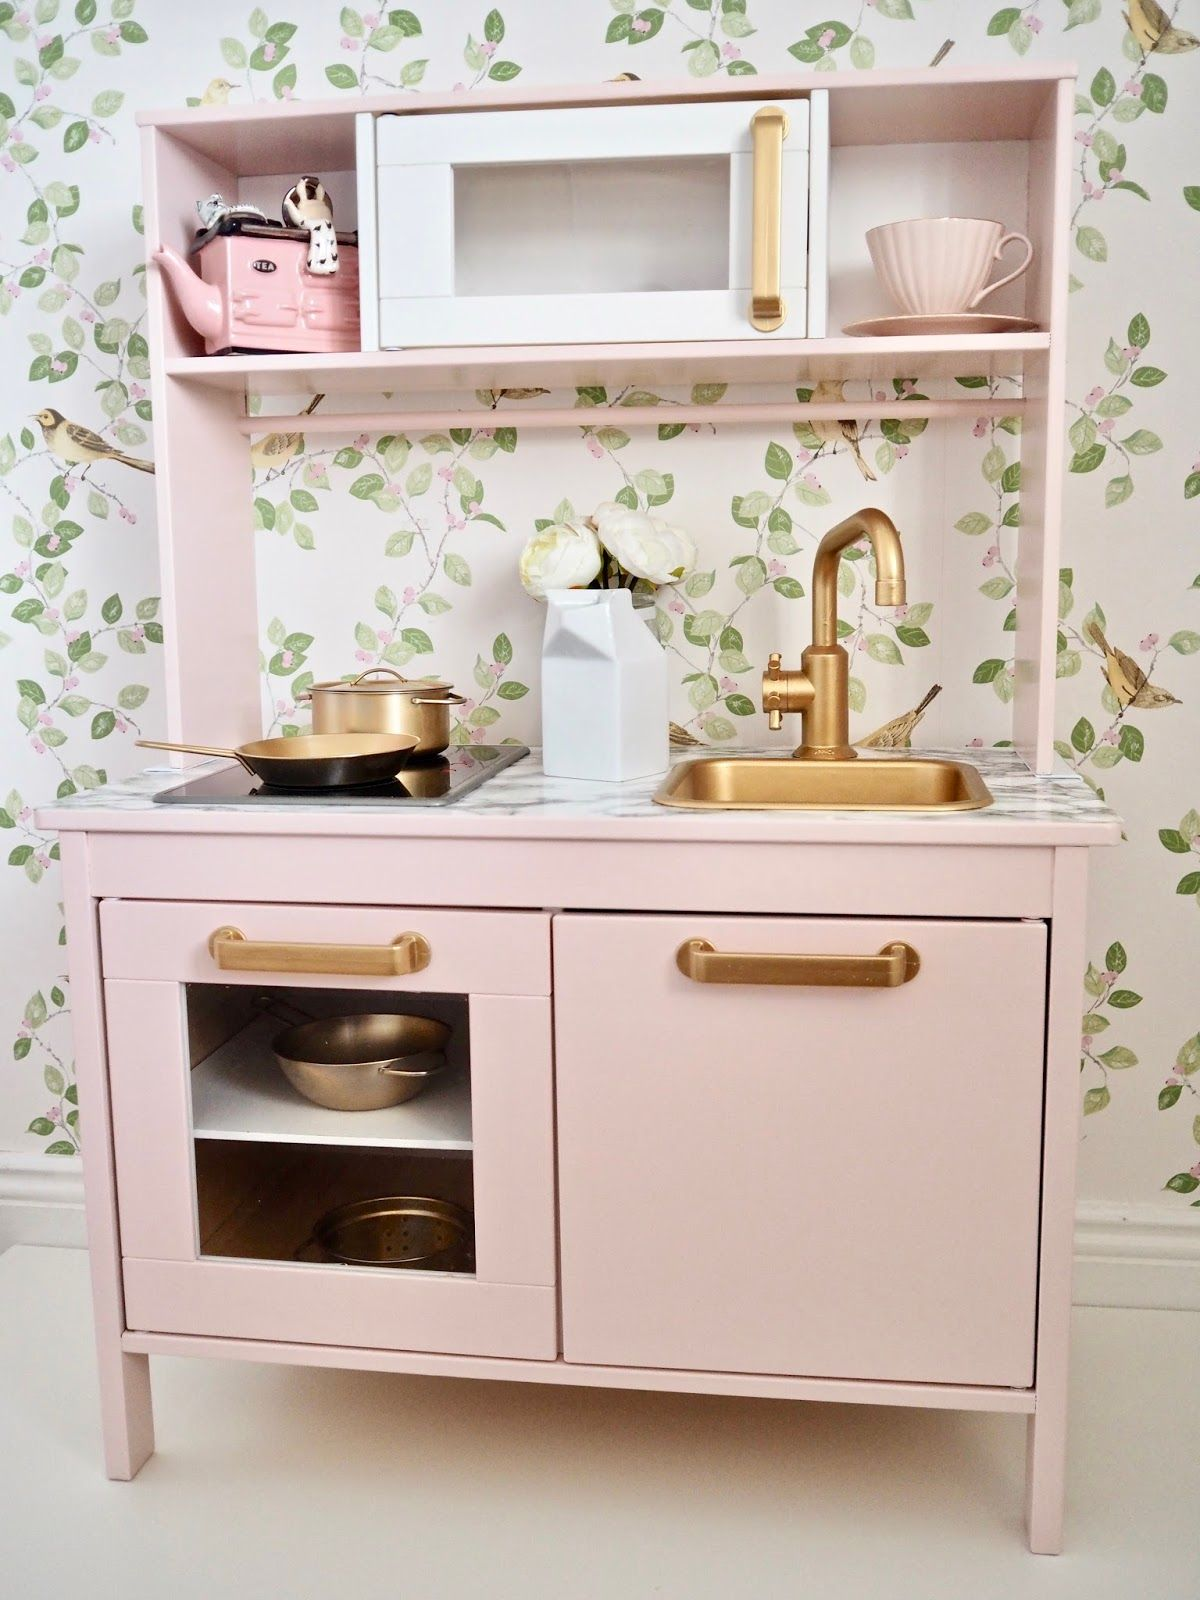 Ikea Keuken Contact Ikea Duktig Play Kitchen Makeover Kids Room Ikea Keuken Keuken